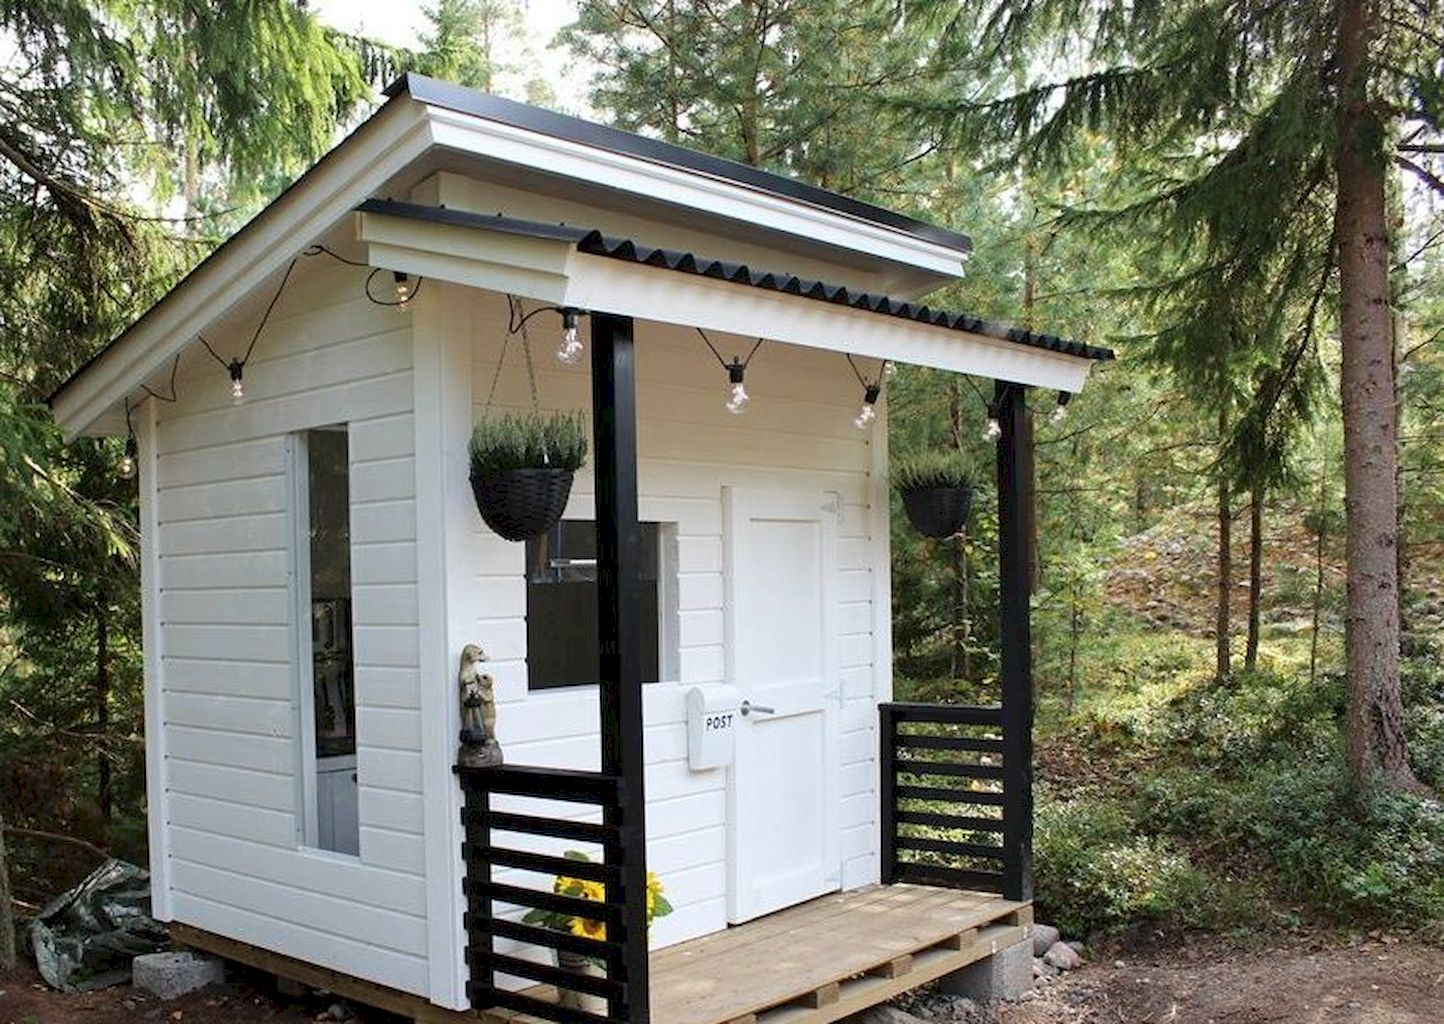 Luxurious Playhouse Plan Into Your Existing Backyard Space